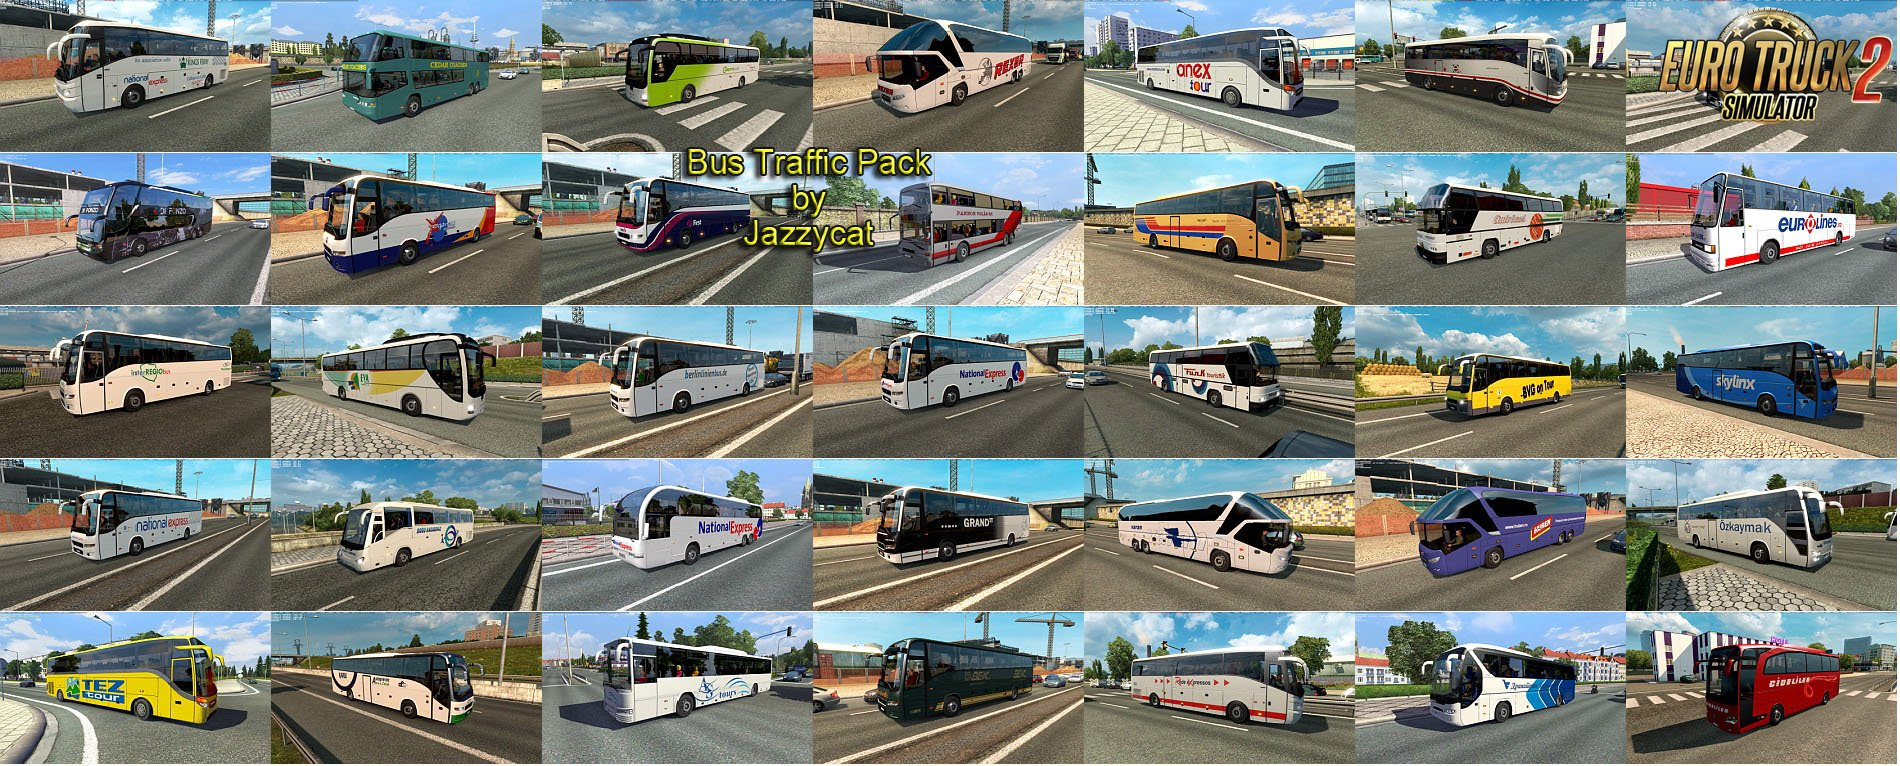 Bus Traffic Pack v2.4 by Jazzycat (1.28.x)